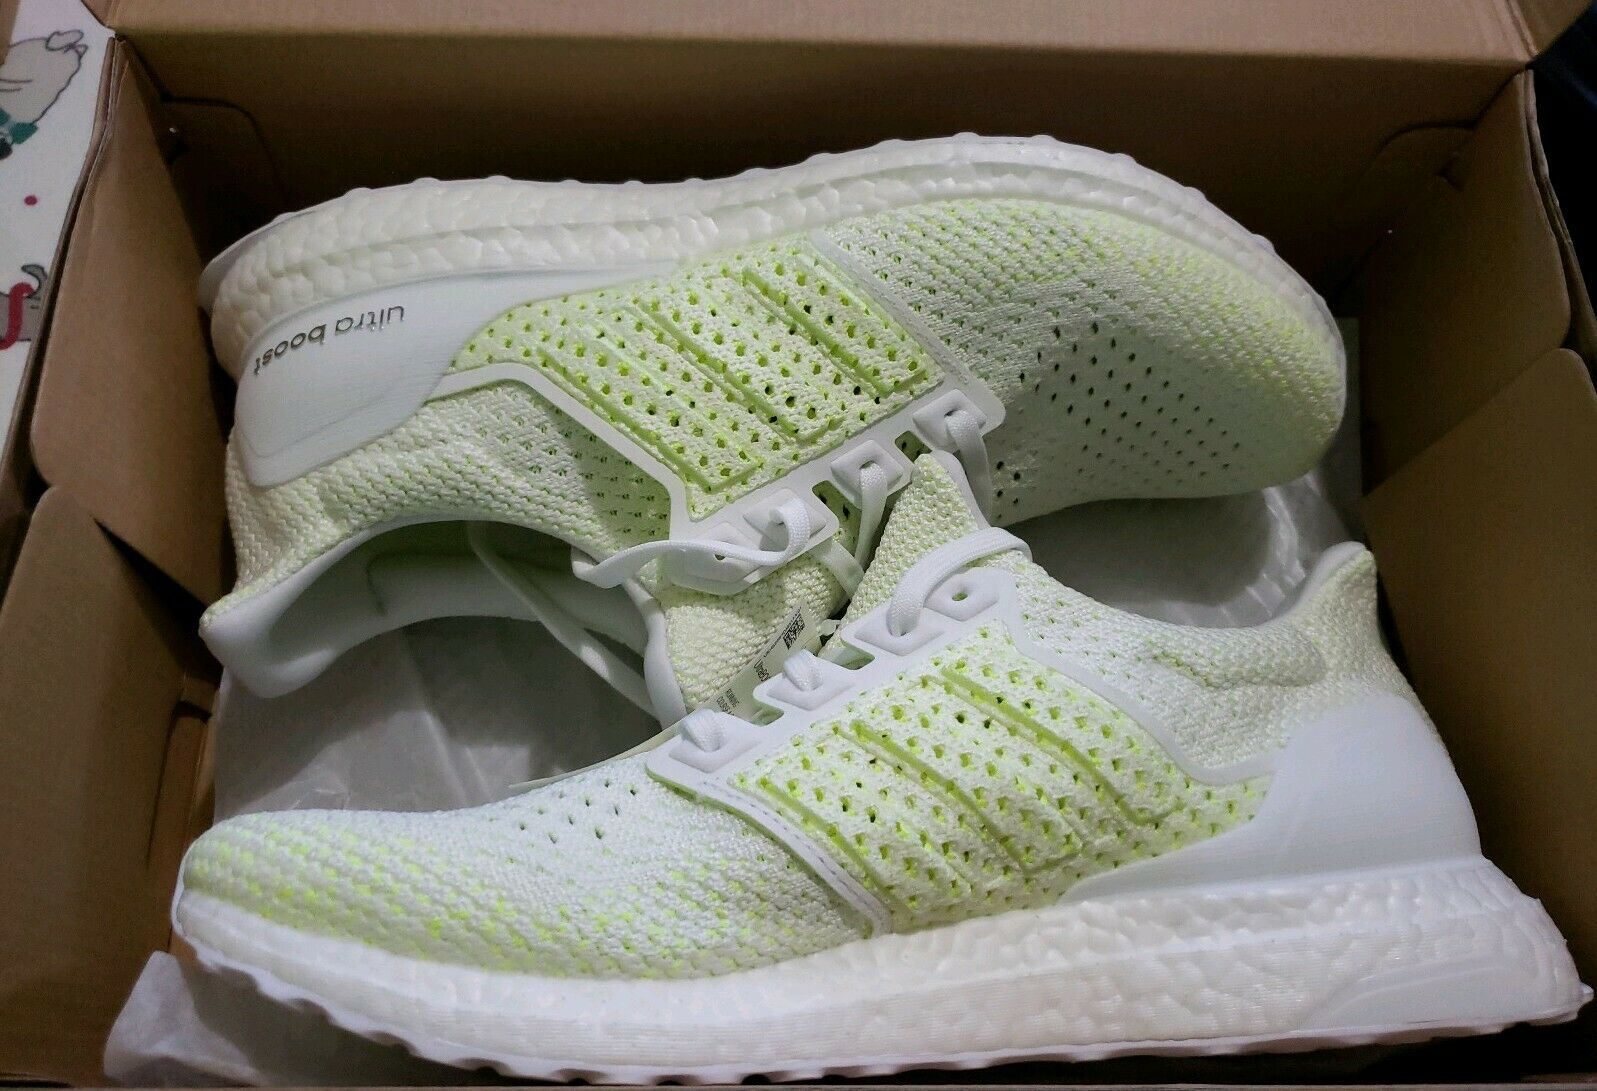 11e3ec1a6 ADIDAS ULTRABOOST CLIMA SZ 11.5 CLOUD WHITE SOLAR YELLOW AQ0481. MCQ  ALEXANDER MCQUEEN shoes SNEAKERS men ...